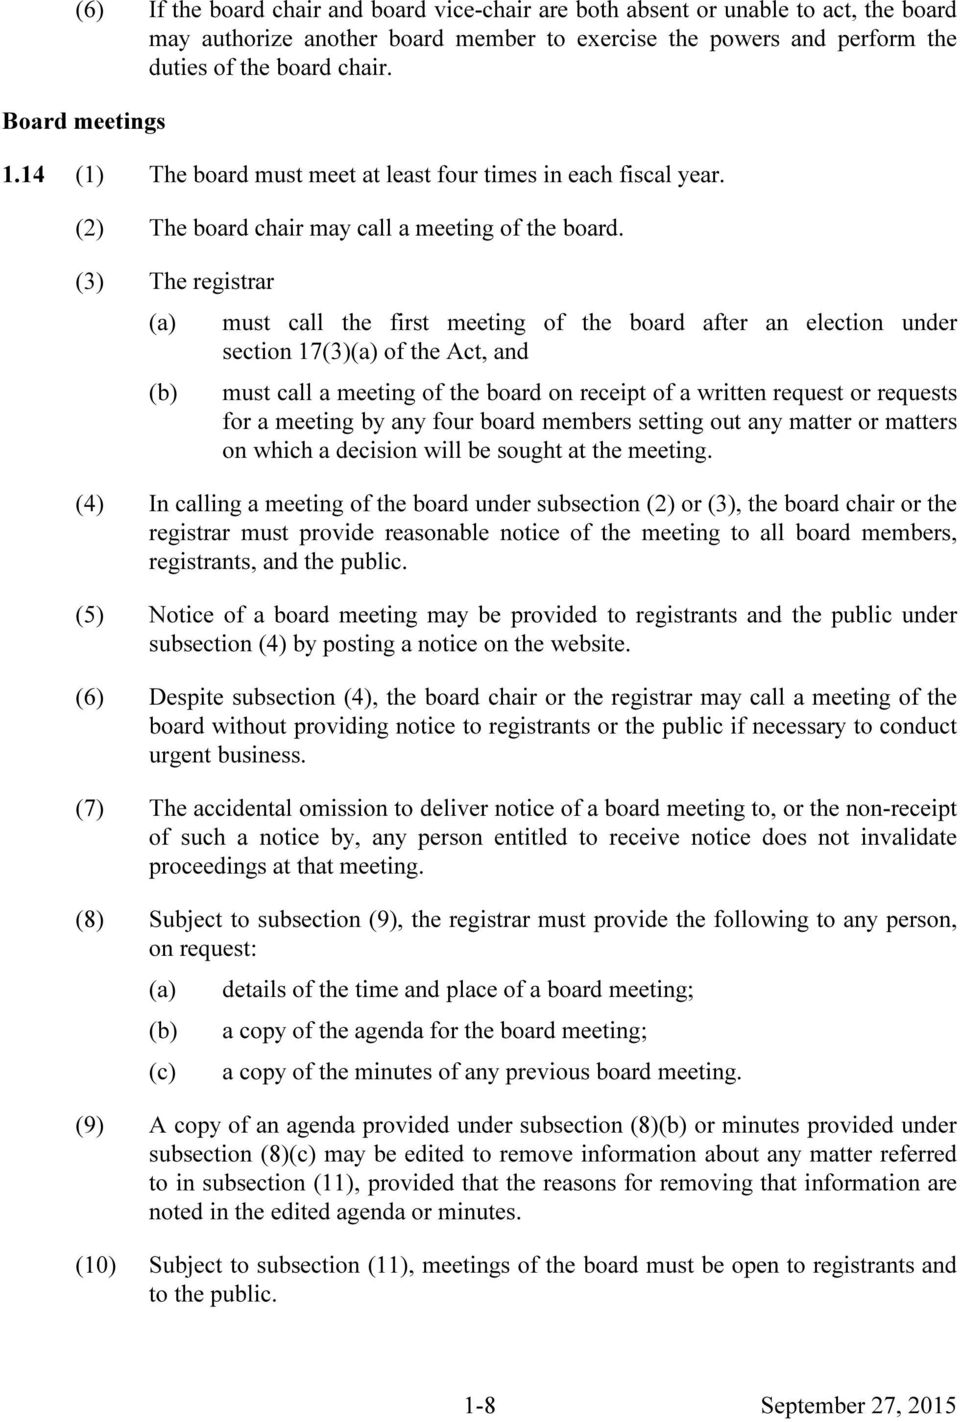 (3) The registrar must call the first meeting of the board after an election under section 17(3) of the Act, and must call a meeting of the board on receipt of a written request or requests for a